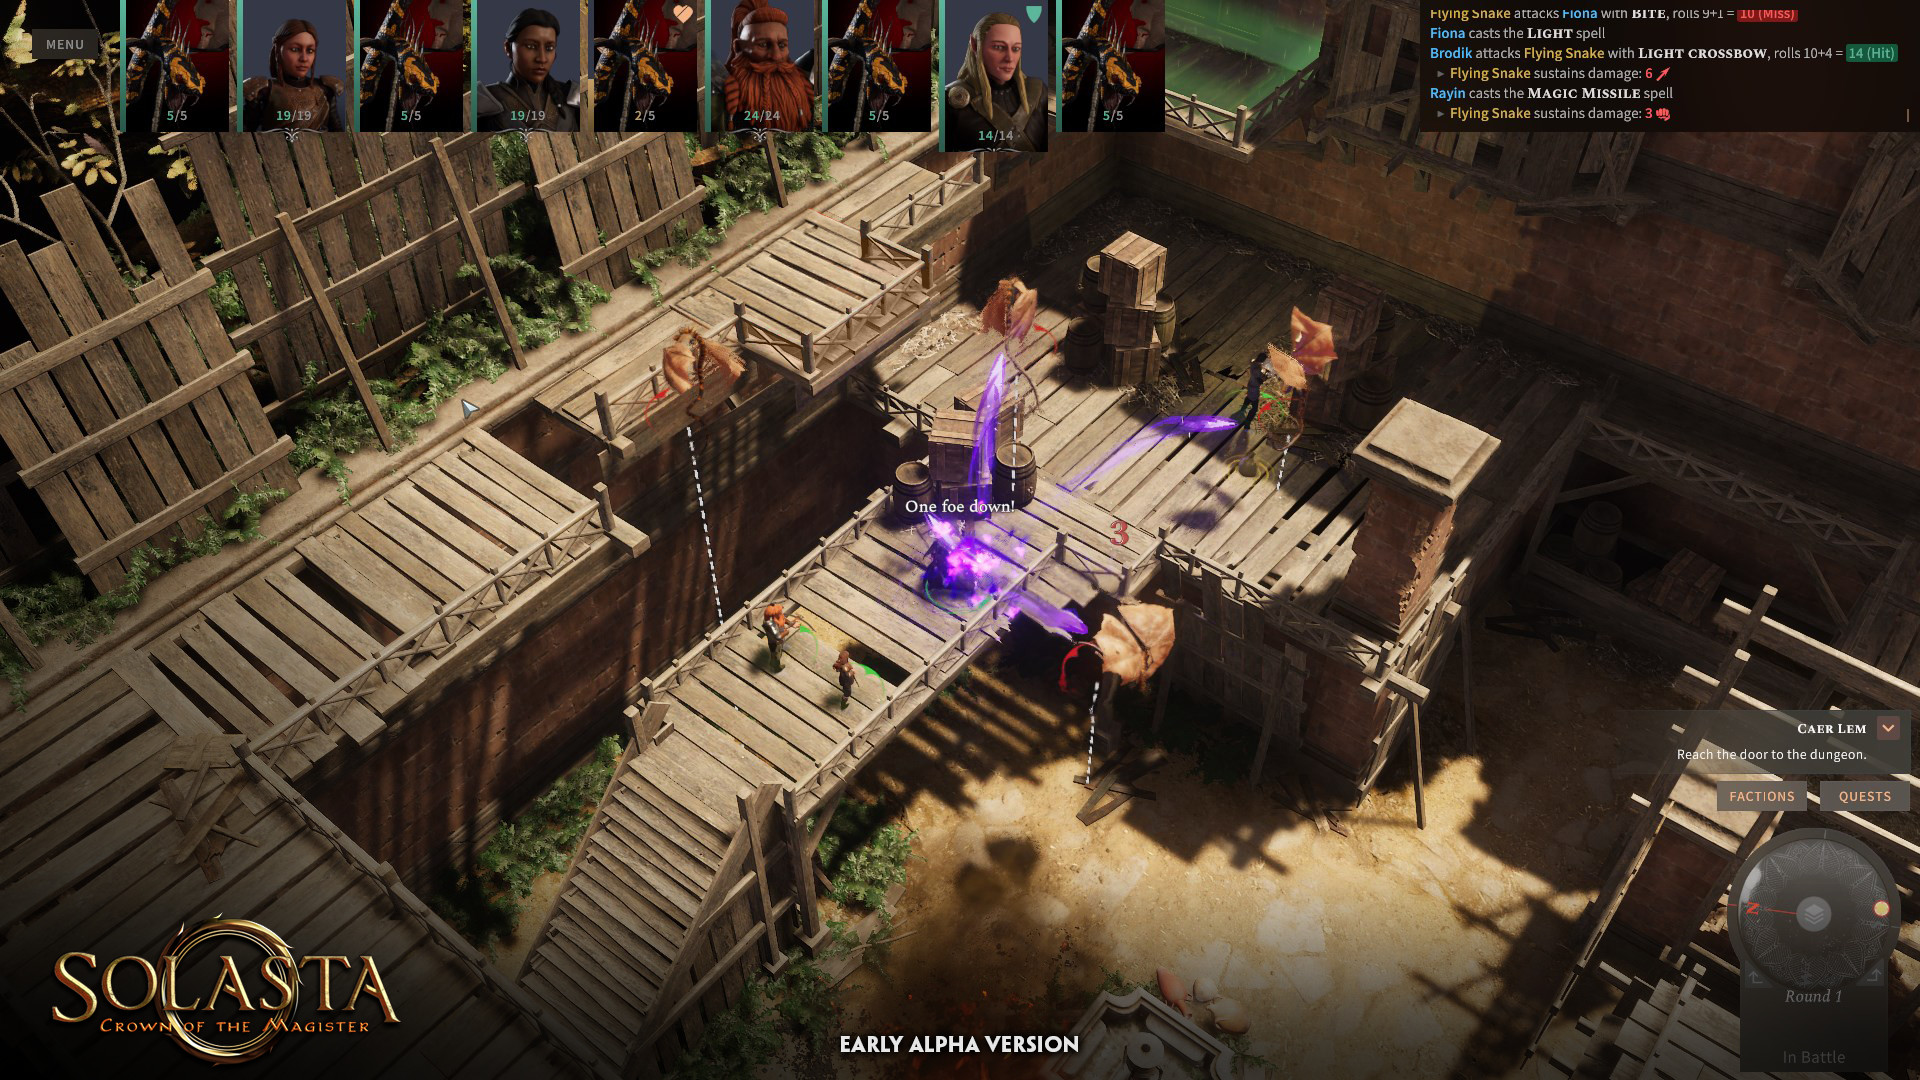 SOLASTA CROWN OF THE MAGISTER EARLY ACCESS